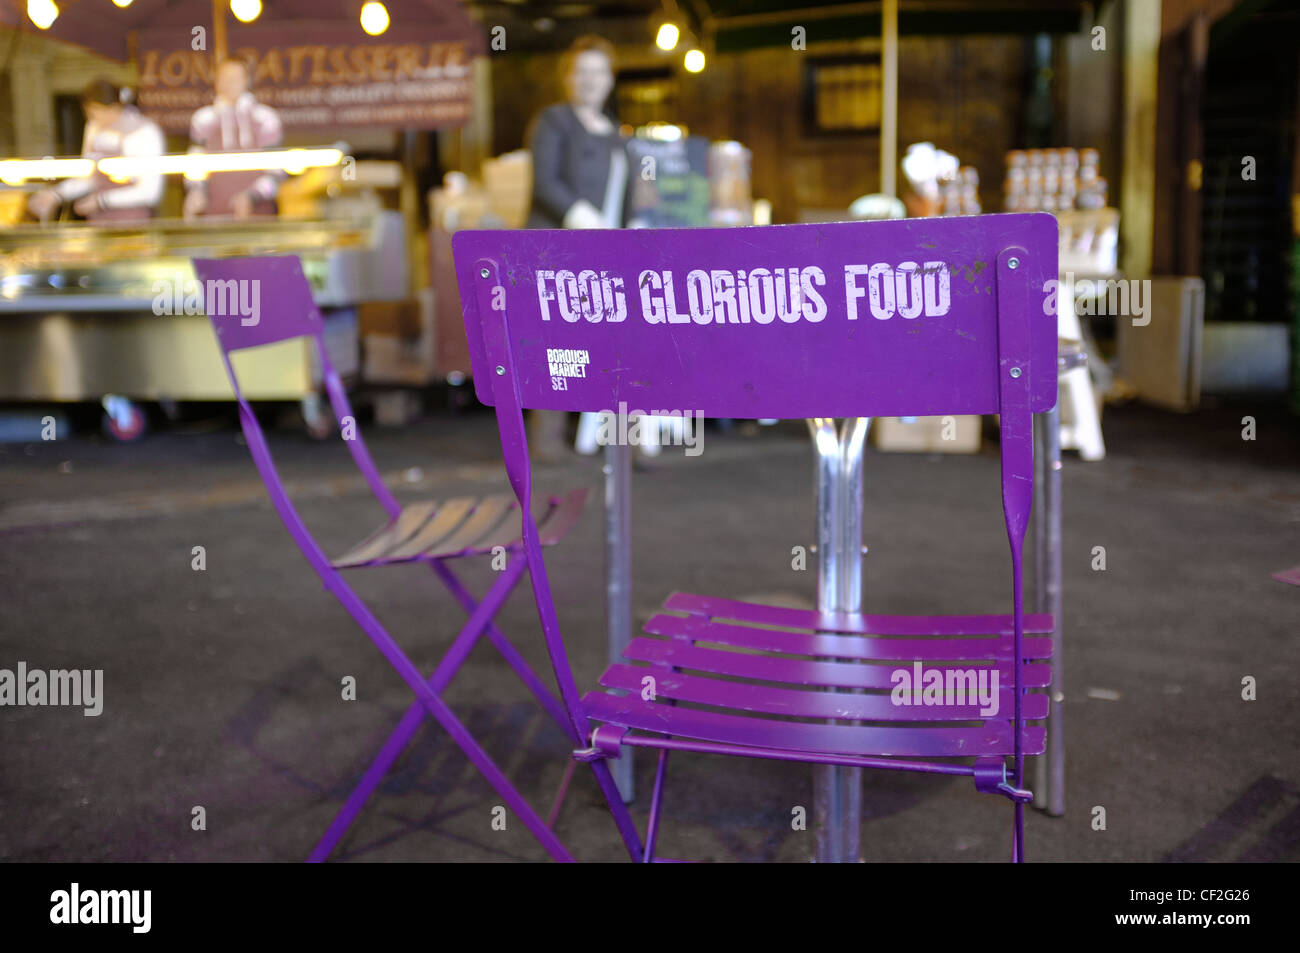 Food Glorious Food written on the back of a chair by a cafe table at Borough Market. - Stock Image